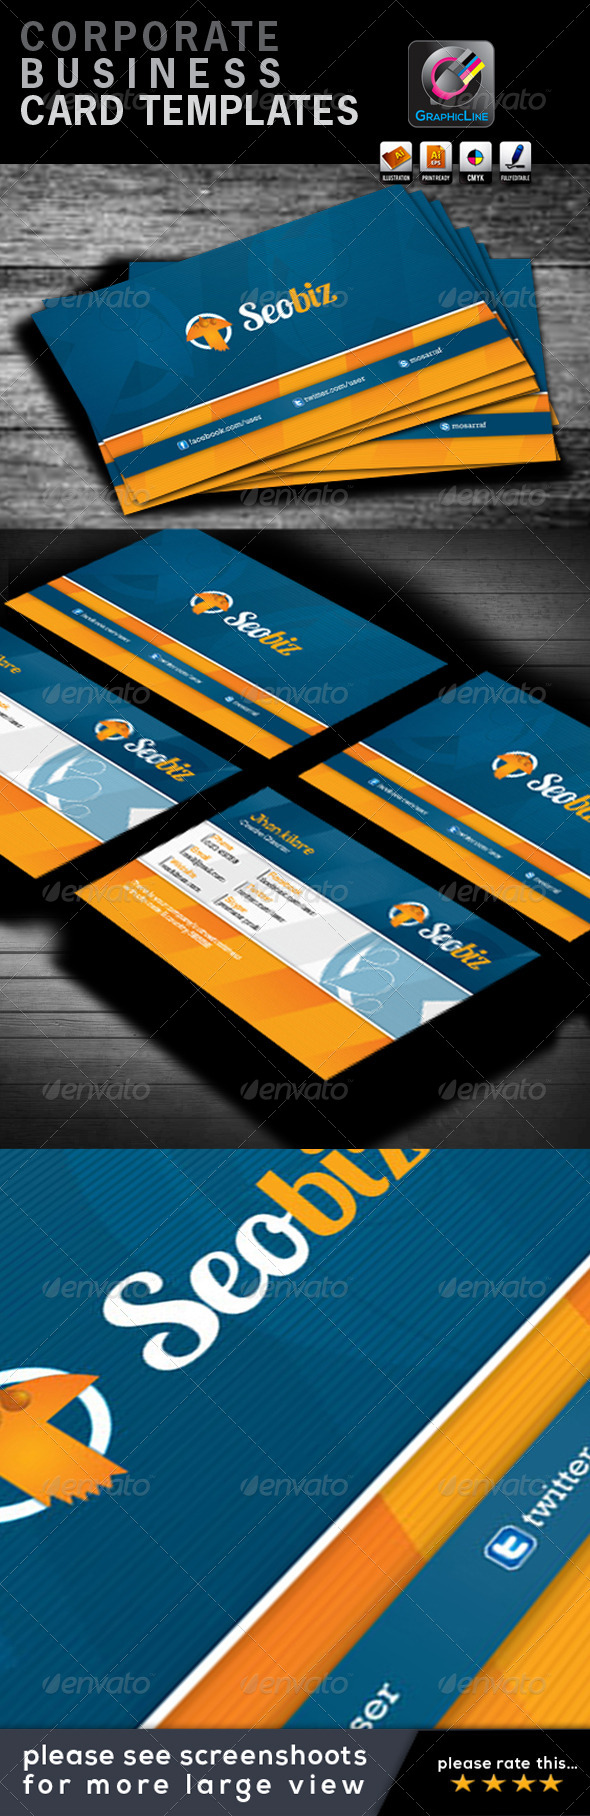 GraphicRiver Seobiz Corporate Business Card 4416863